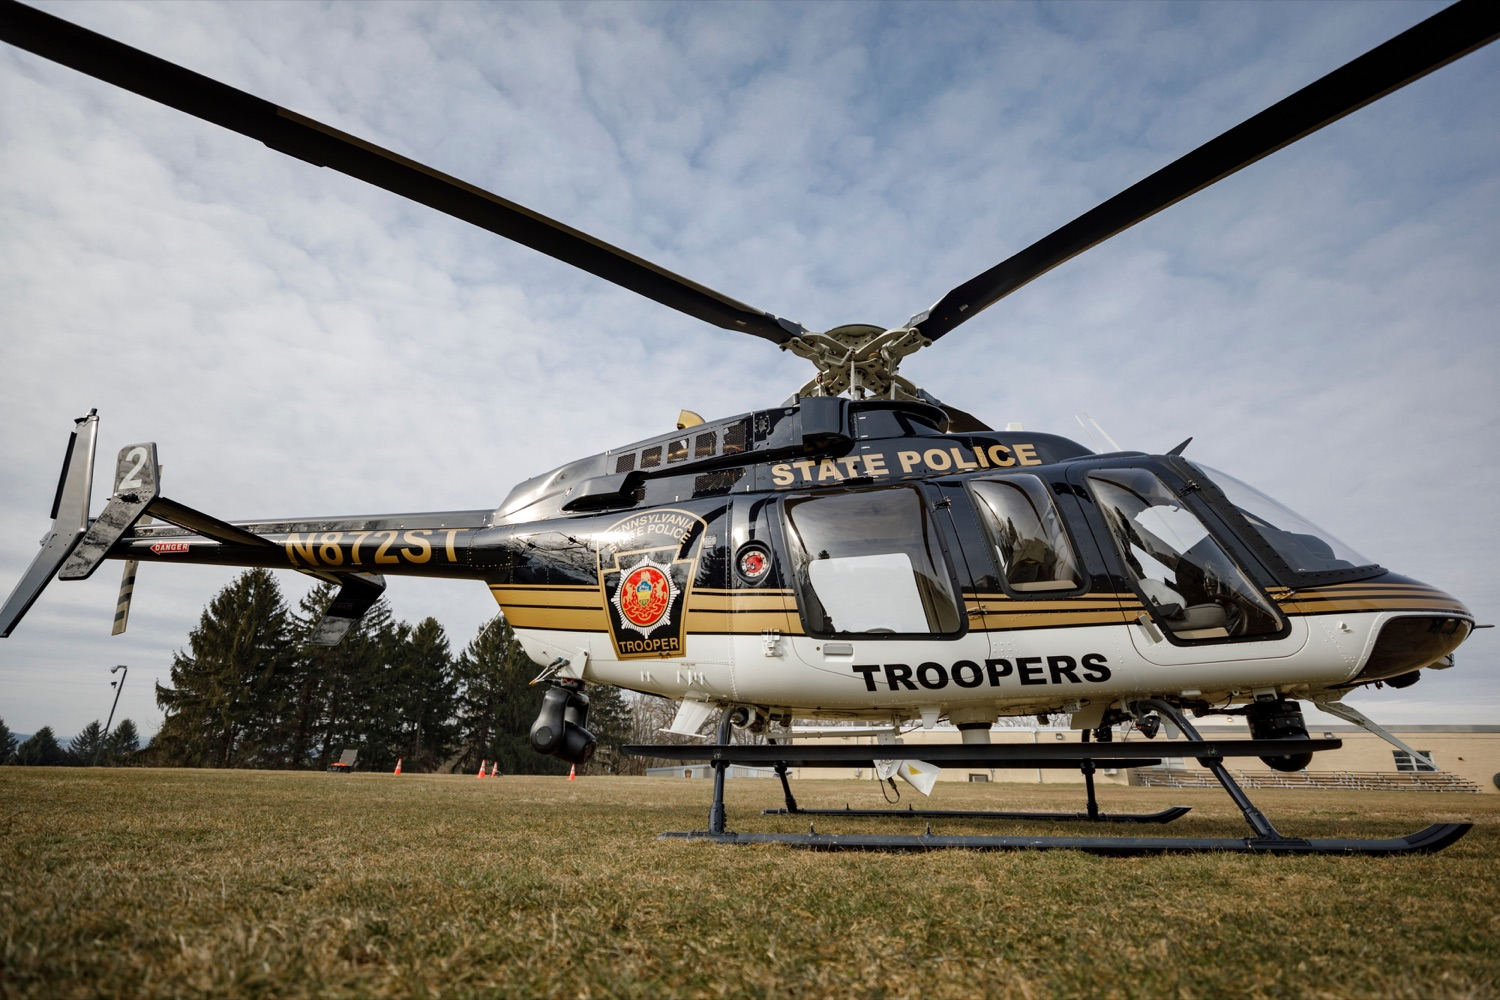 "<a href=""https://filesource.wostreaming.net/commonwealthofpa/photo/17706_DOH_Drone_Safety_NK_002.JPG"" target=""_blank"">⇣ Download Photo<br></a>A Pennsylvania State Police helicopter is pictured before a press conference, which highlighted the danger drones pose to helicopters in emergency situations, at the Pennsylvania State Police Academy in Hershey on Friday, January 31, 2020."